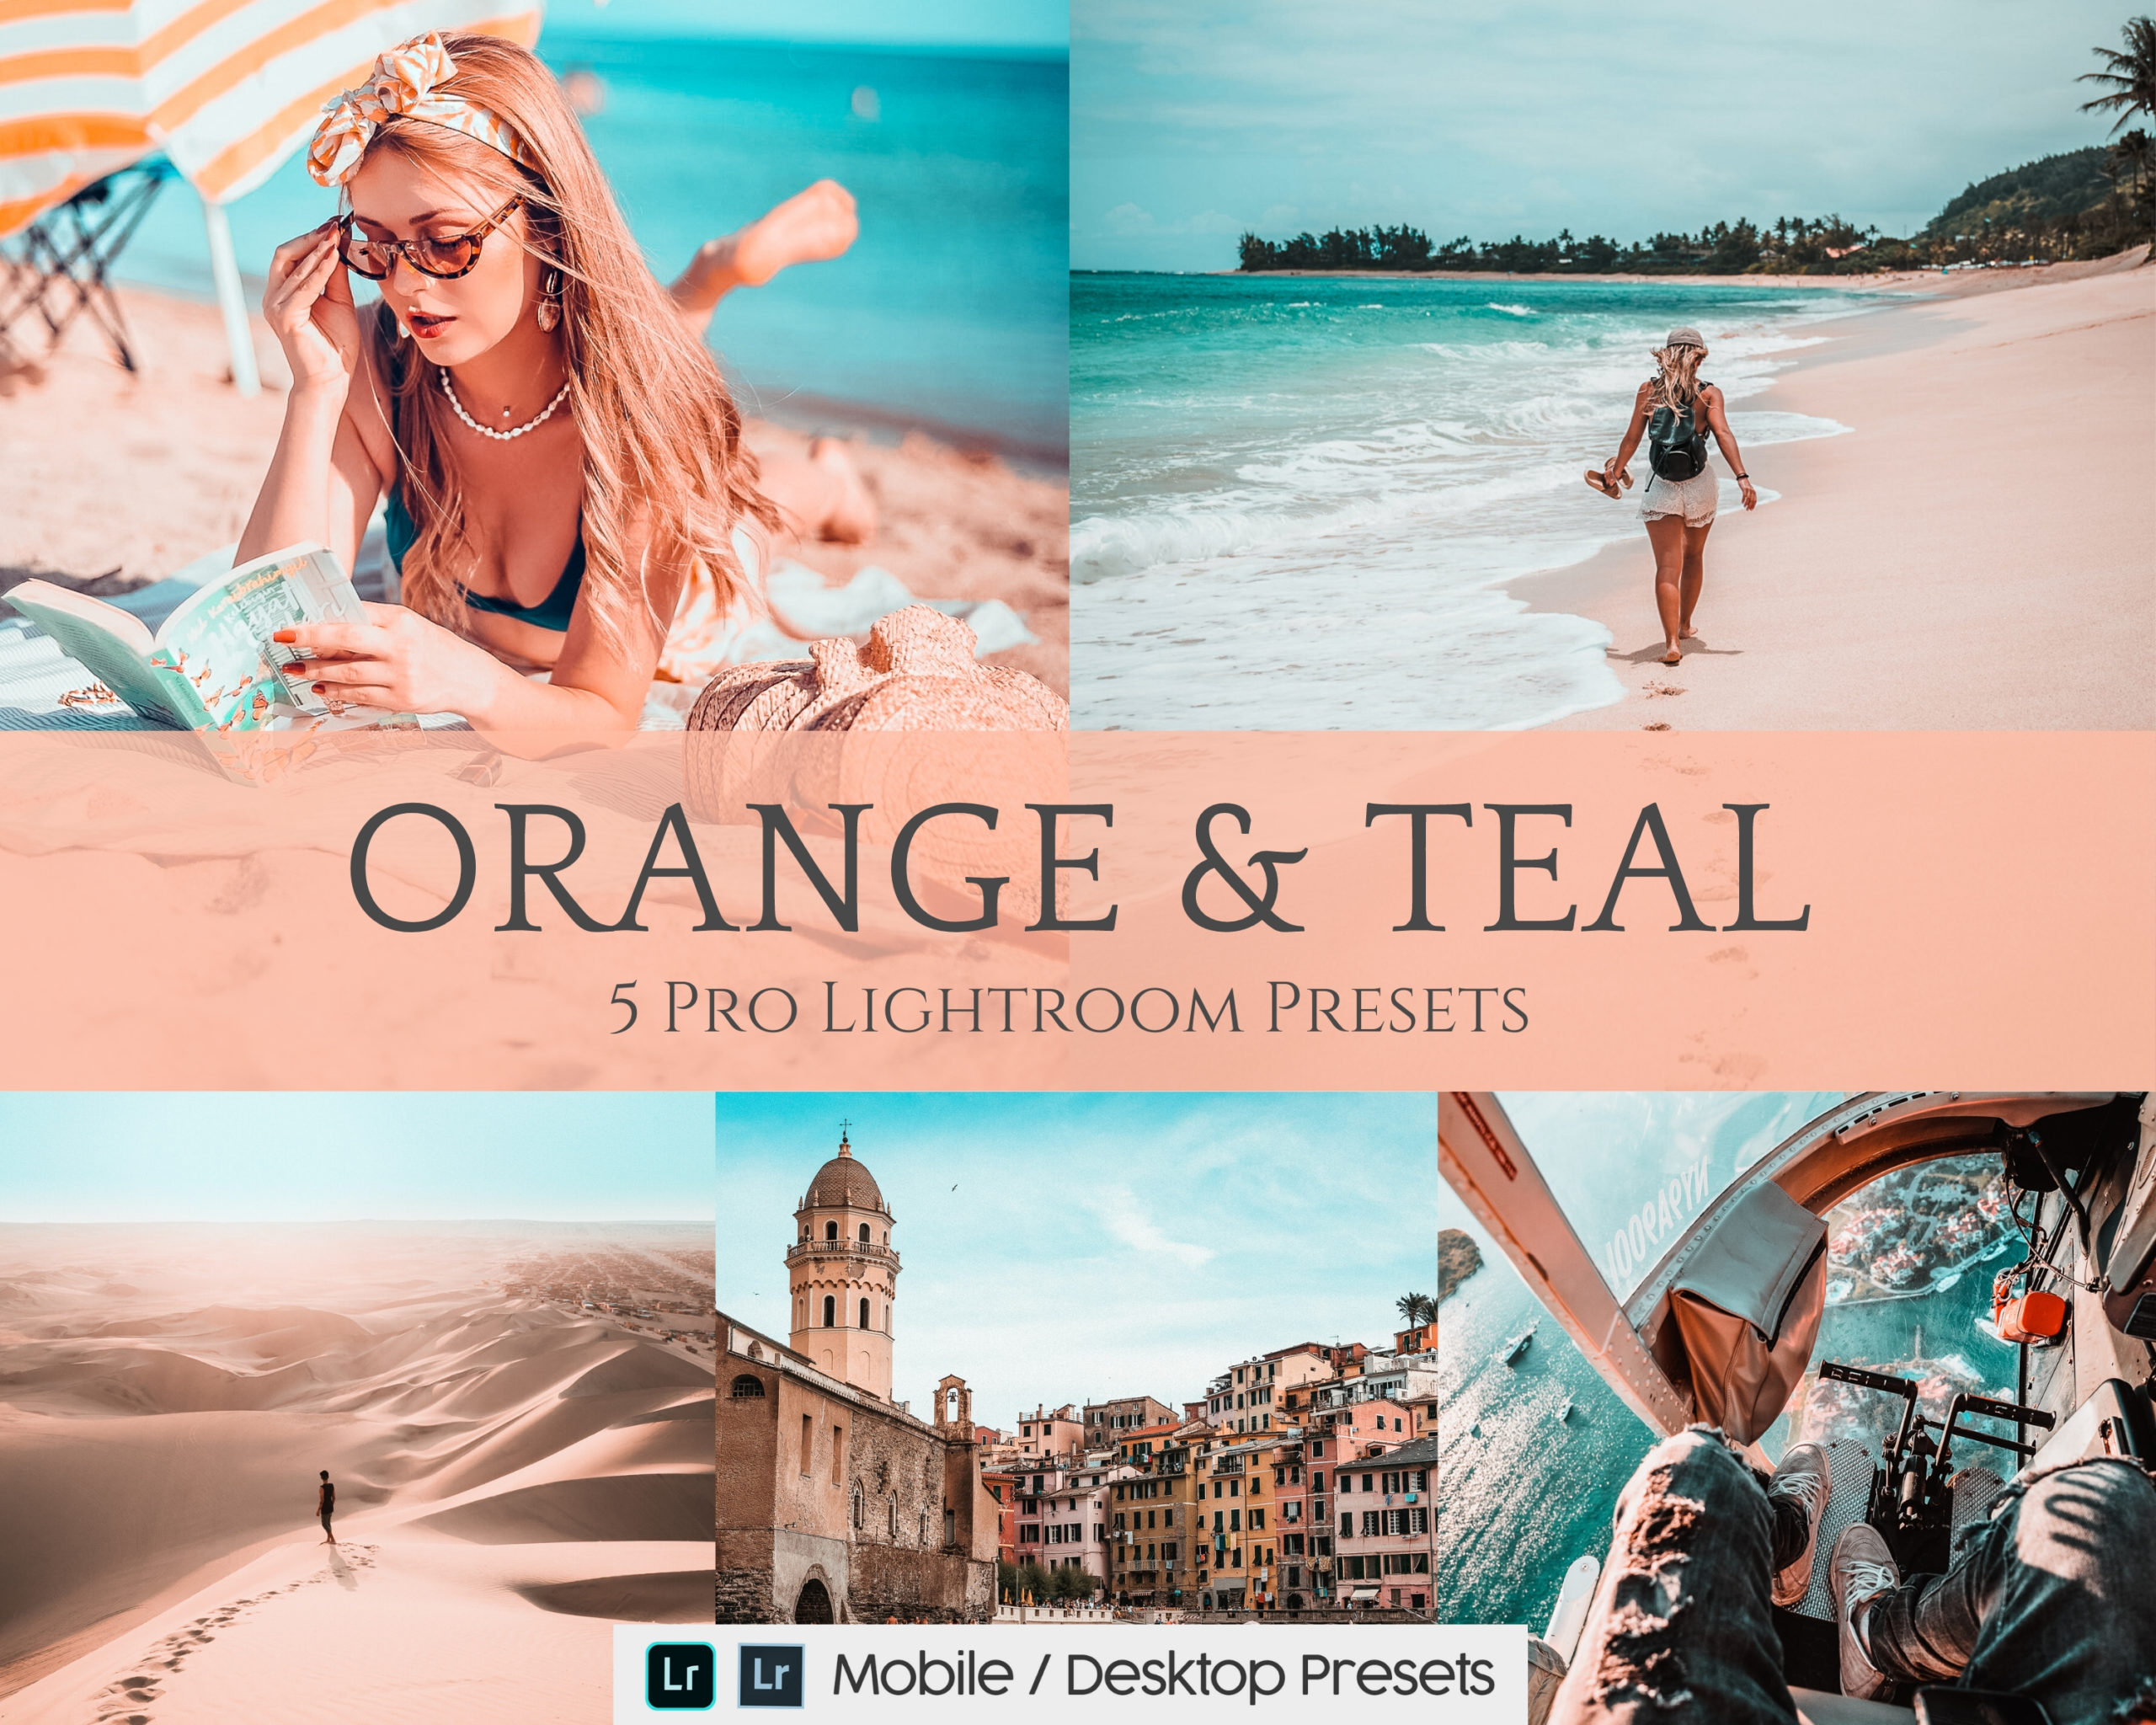 Orange And Teal Preset Pack 10 Amazing Presets To Make Your Photos Stand Out Filtergrade